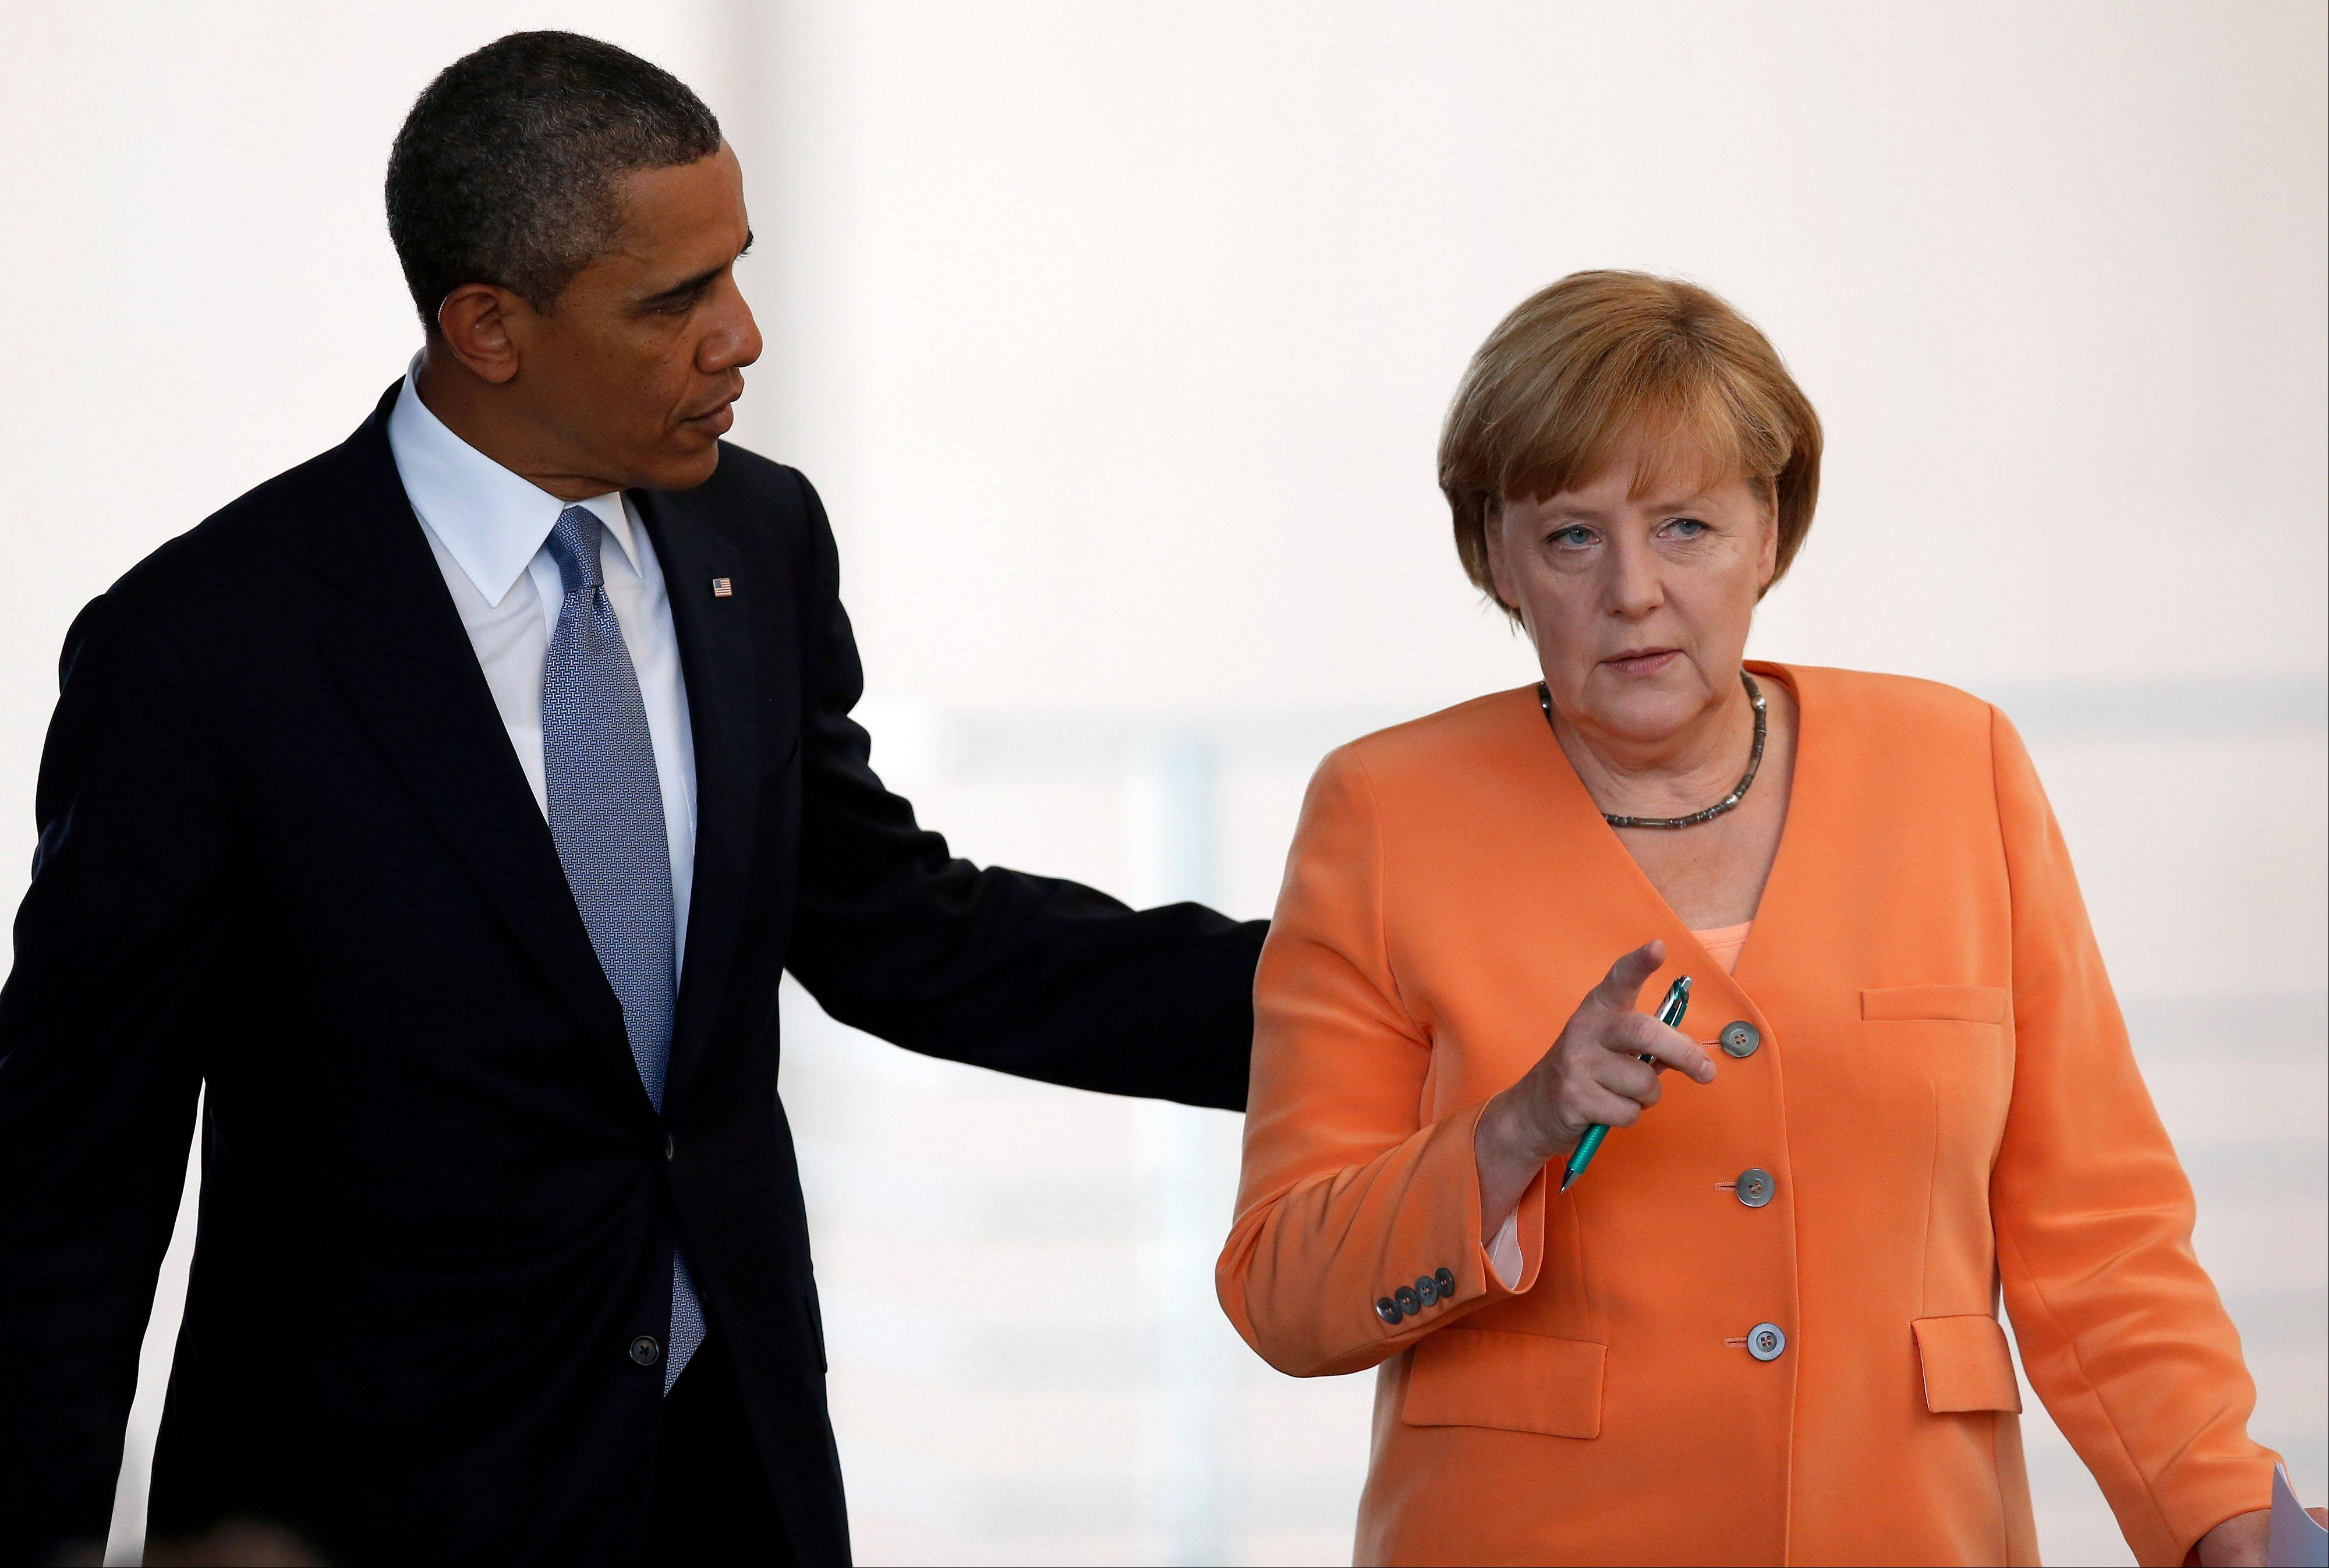 Spying tests trust between Obama, Merkel